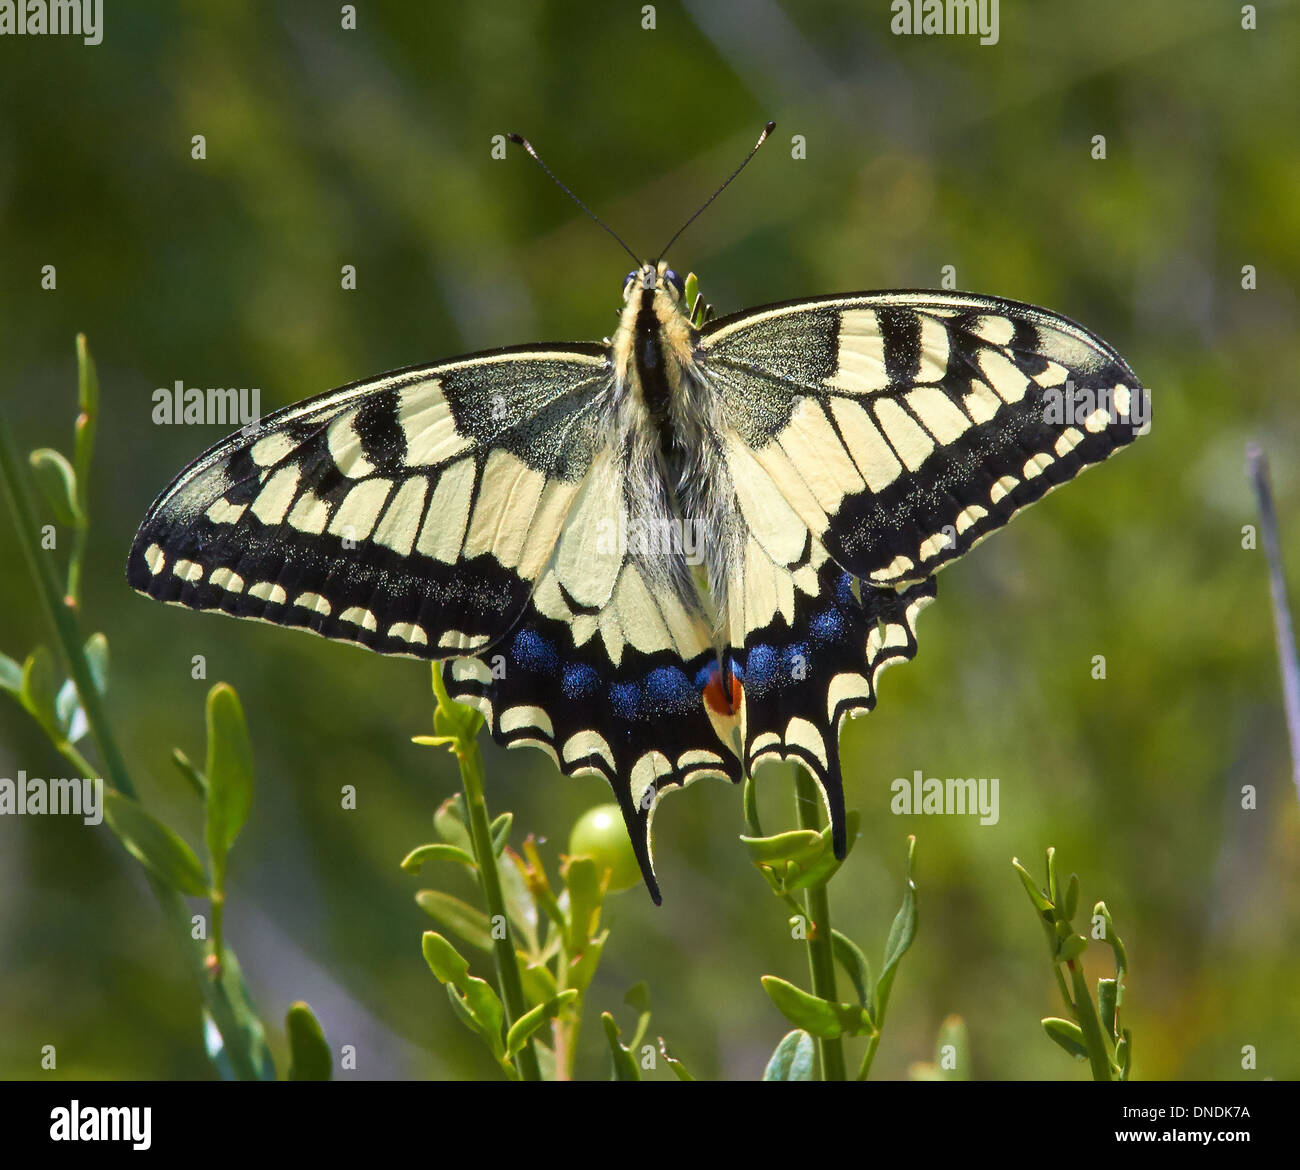 European Swallowtail butterfly at rest on vegetation - Stock Image